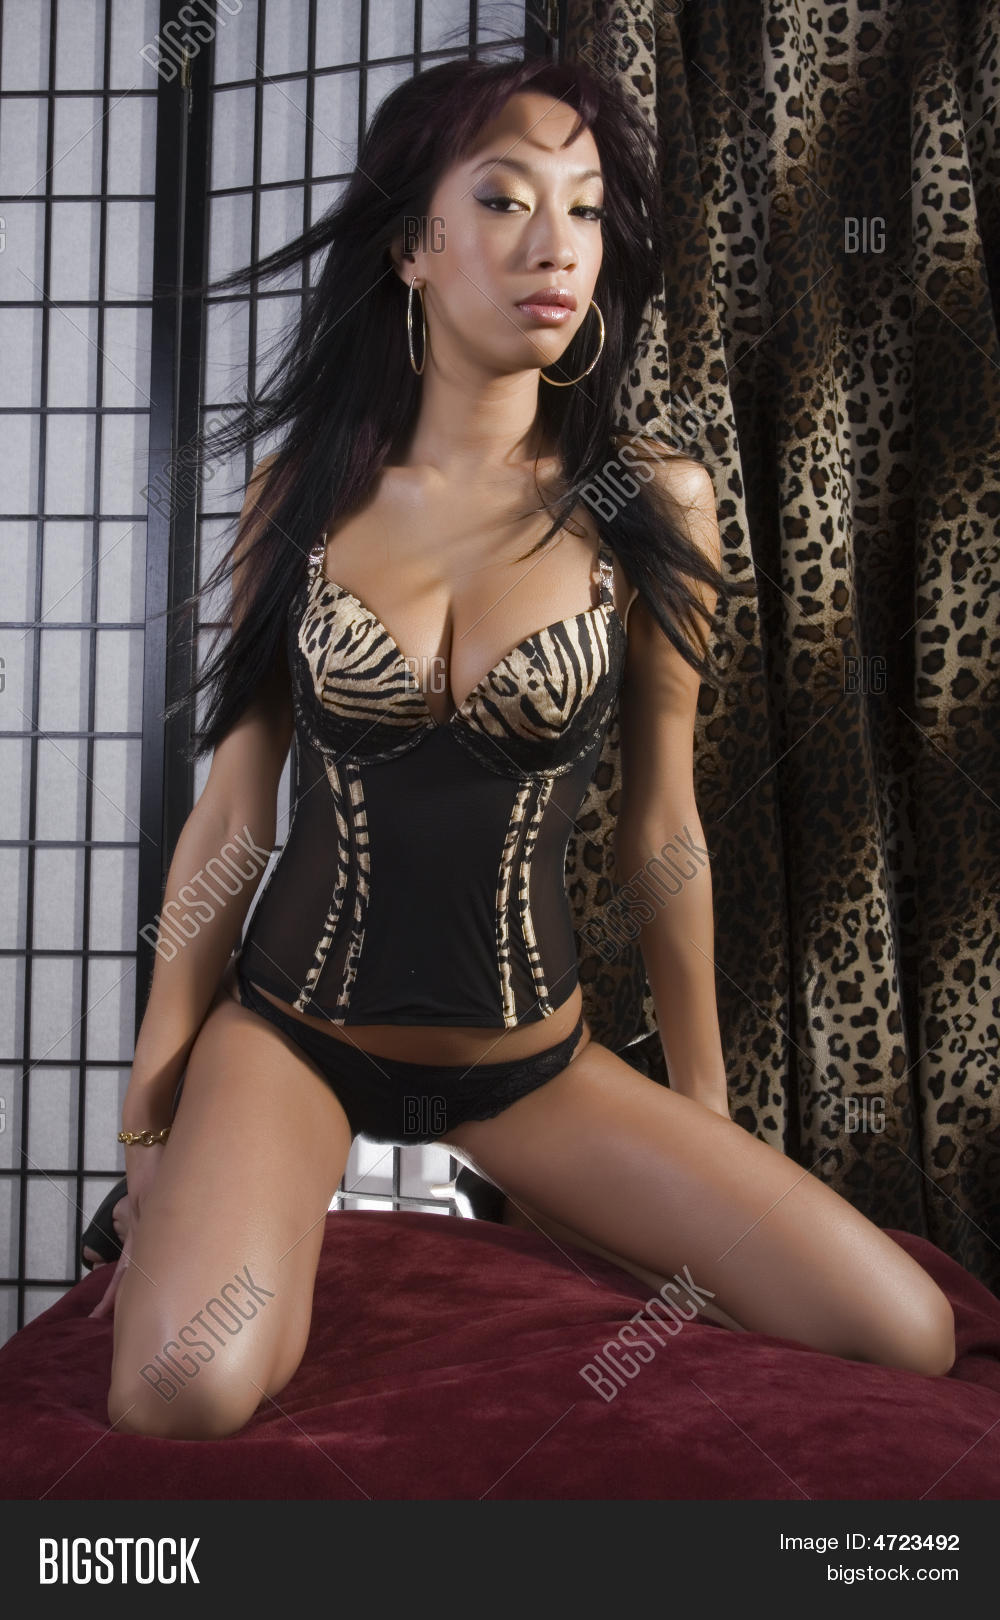 Were visited beautiful asian glamour models